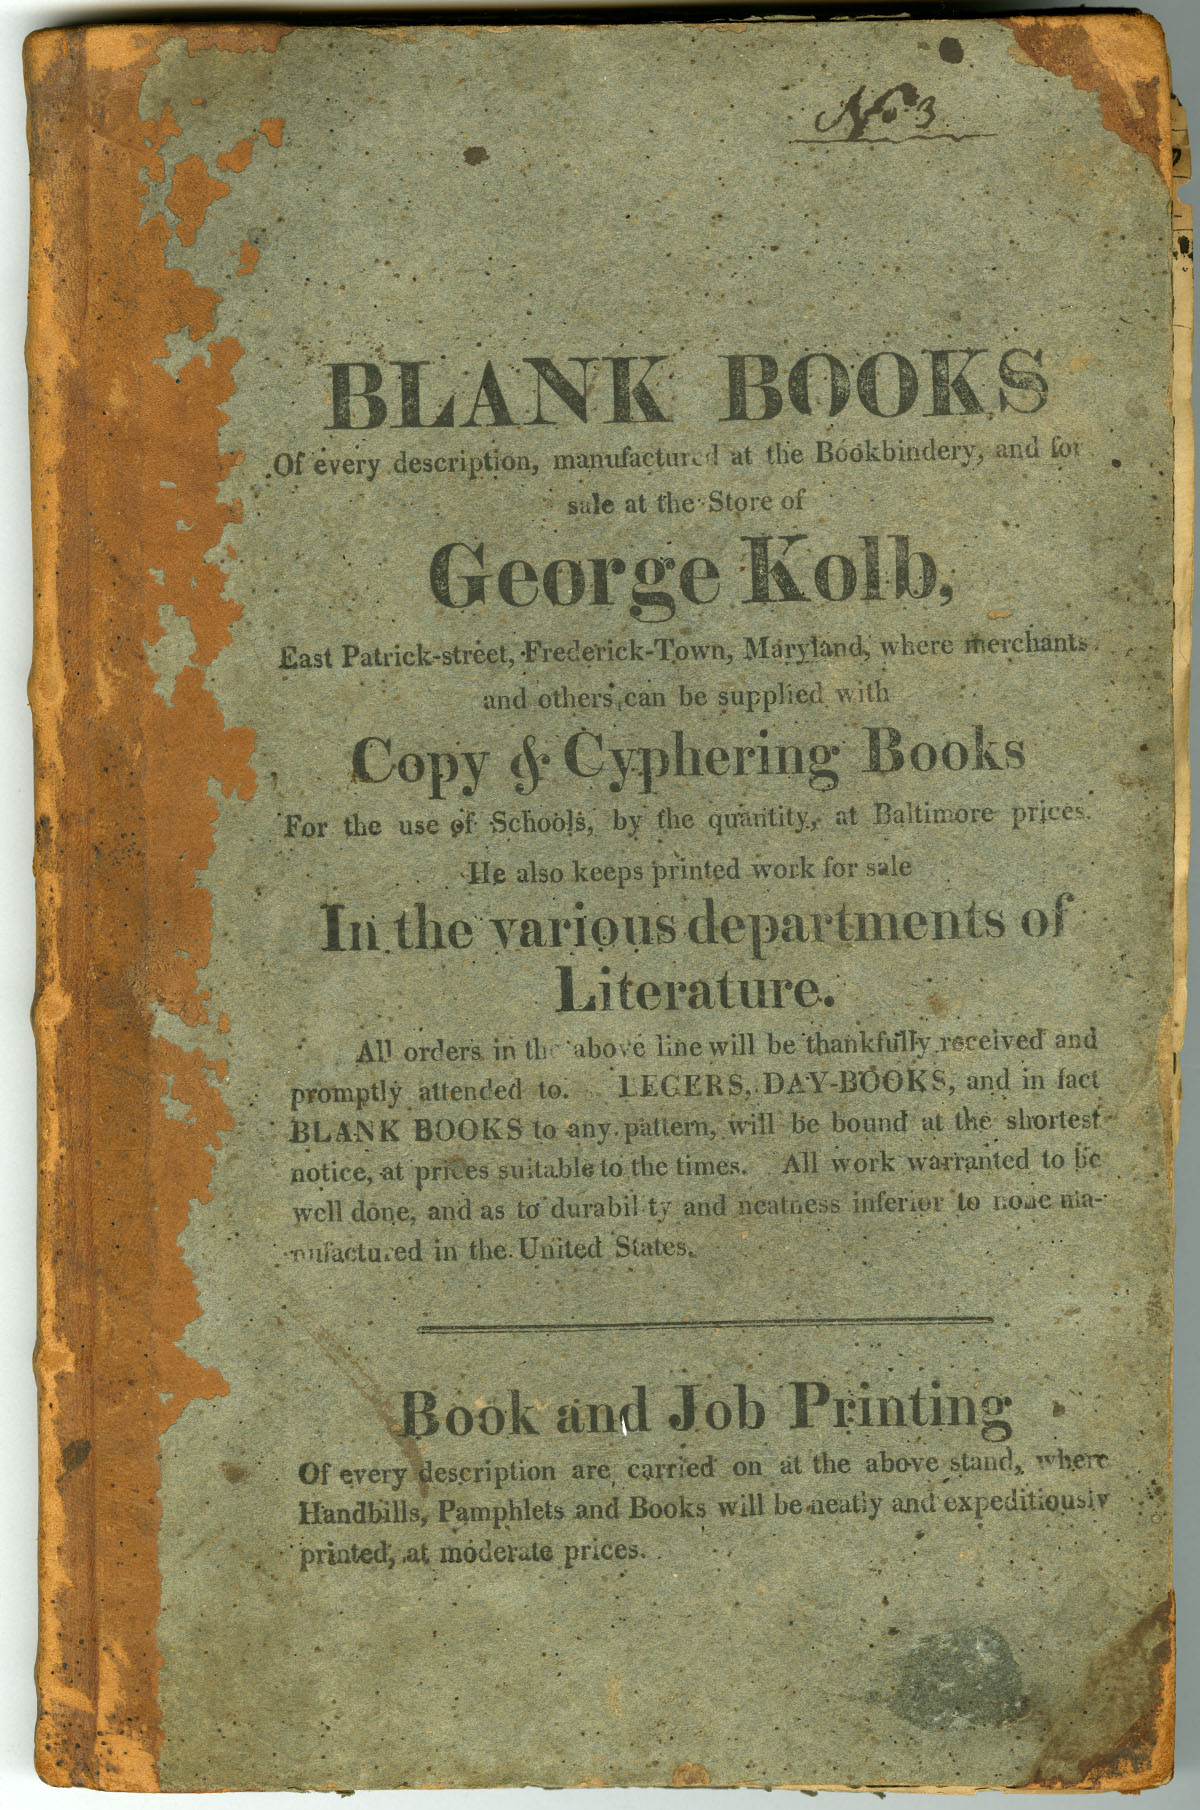 Blank book published by George Kolb of Frederickton, MD, between 1818 and 1820. Used as a medical journal by Dr. Peter Fahrney. Peter Fahrney papers.